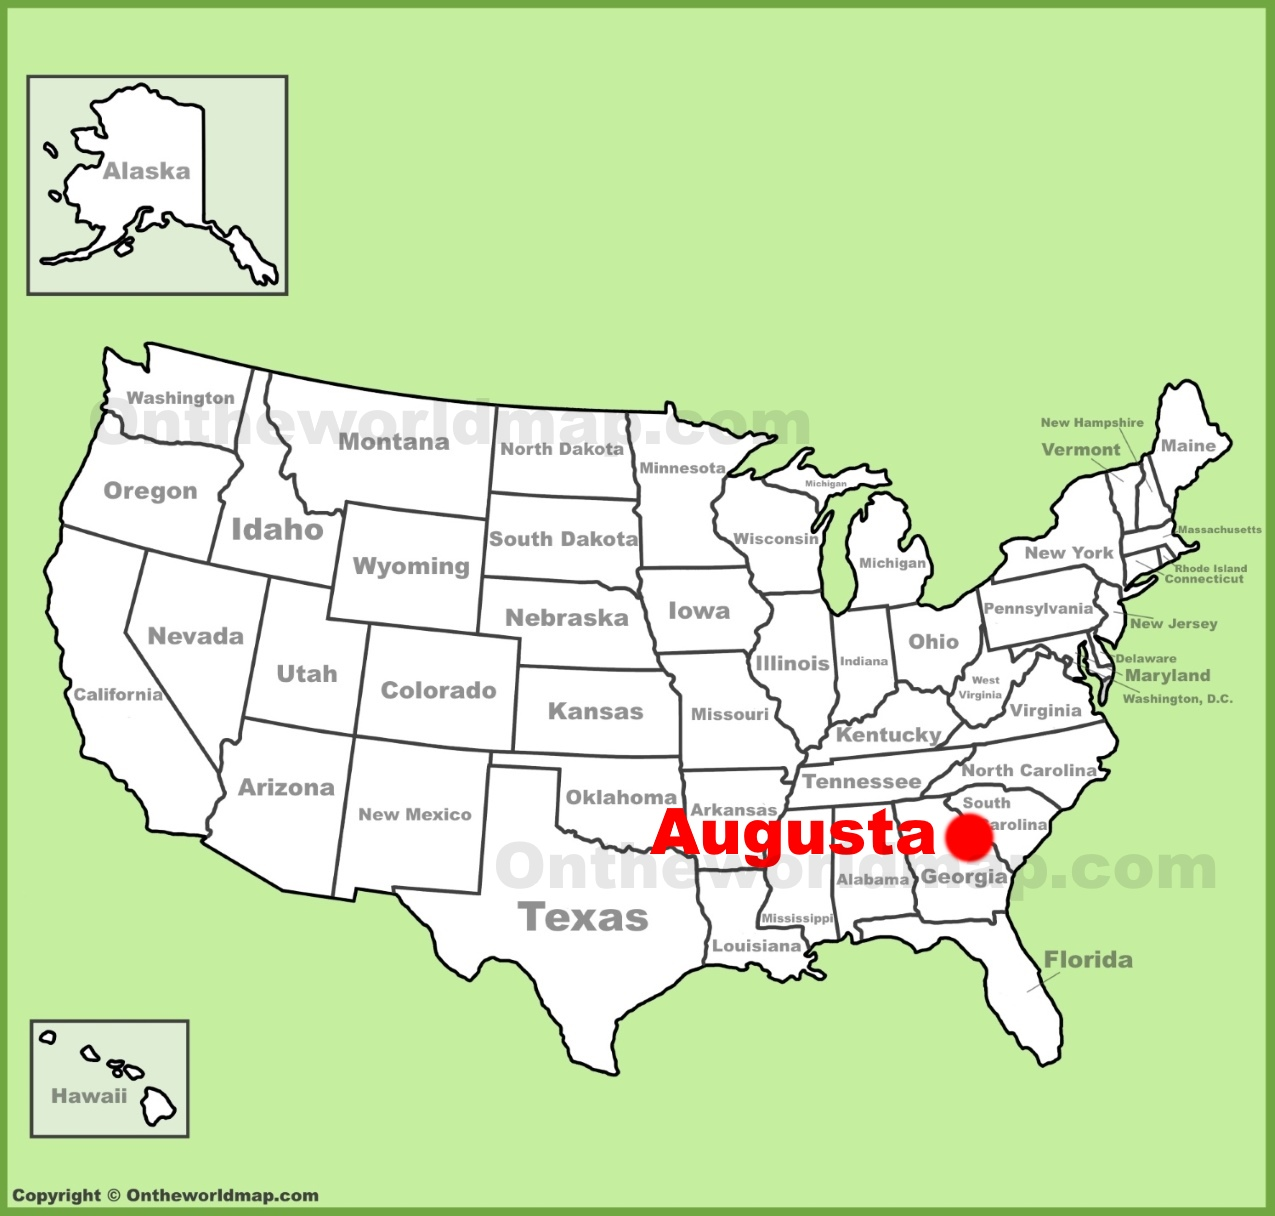 Map Of Augusta Georgia And Surrounding Area.Augusta Georgia Location On The U S Map